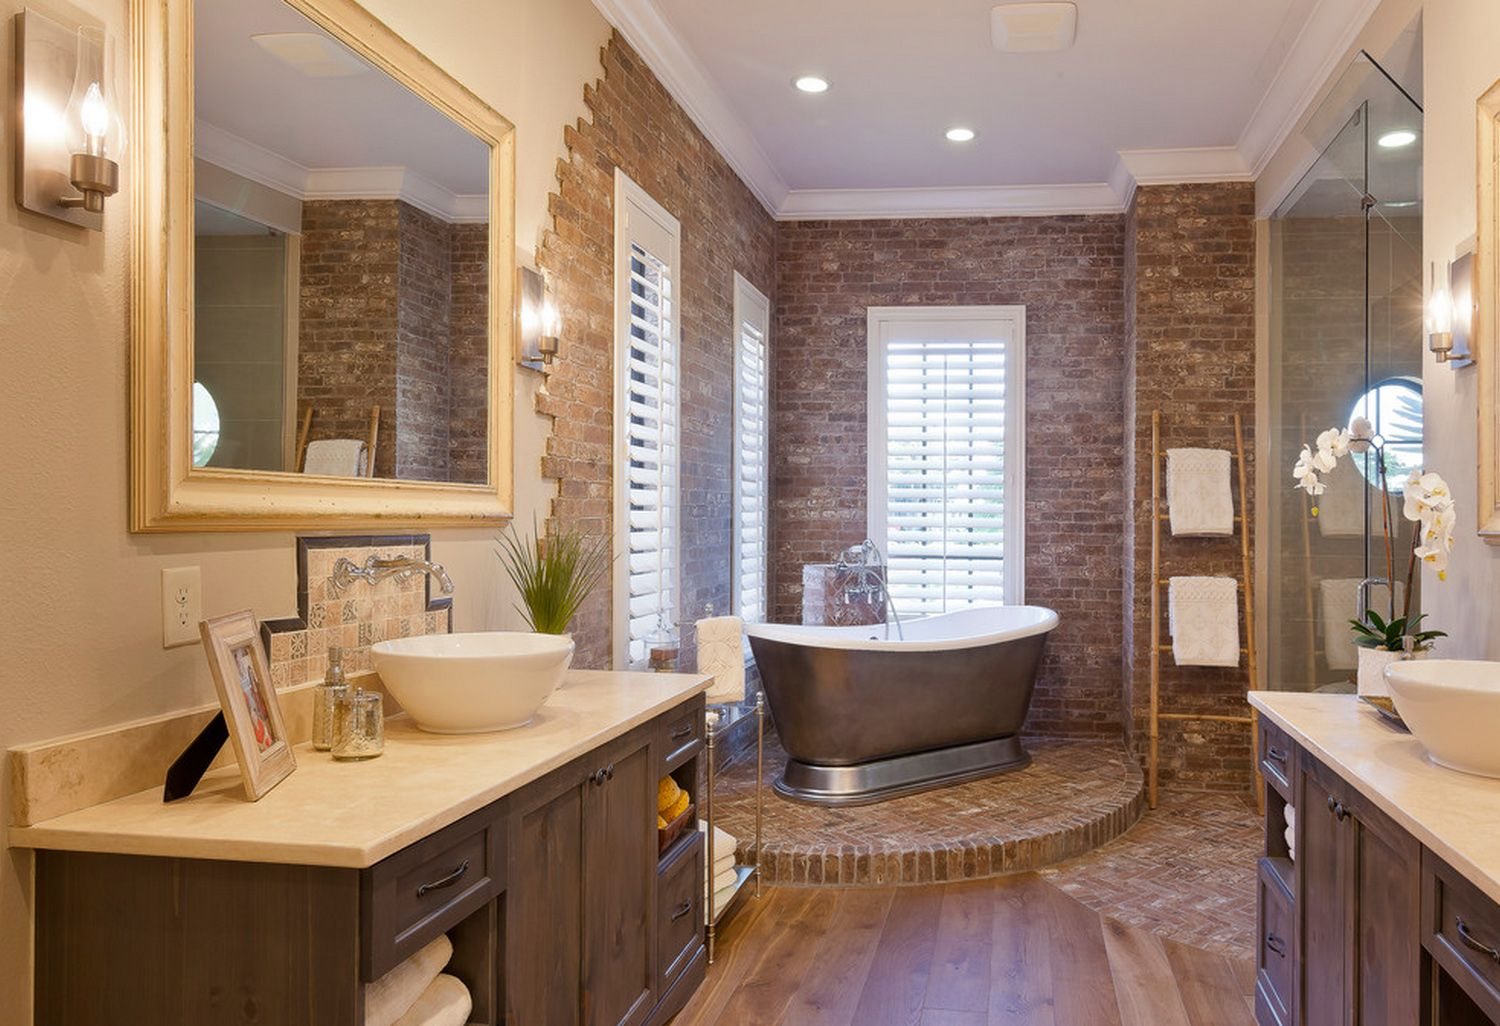 John Cannon home designed by Beasley & Henley Interior Design. #Design #Ideas Ways to decorate your luxury home. #Naples, FL #bathrooms